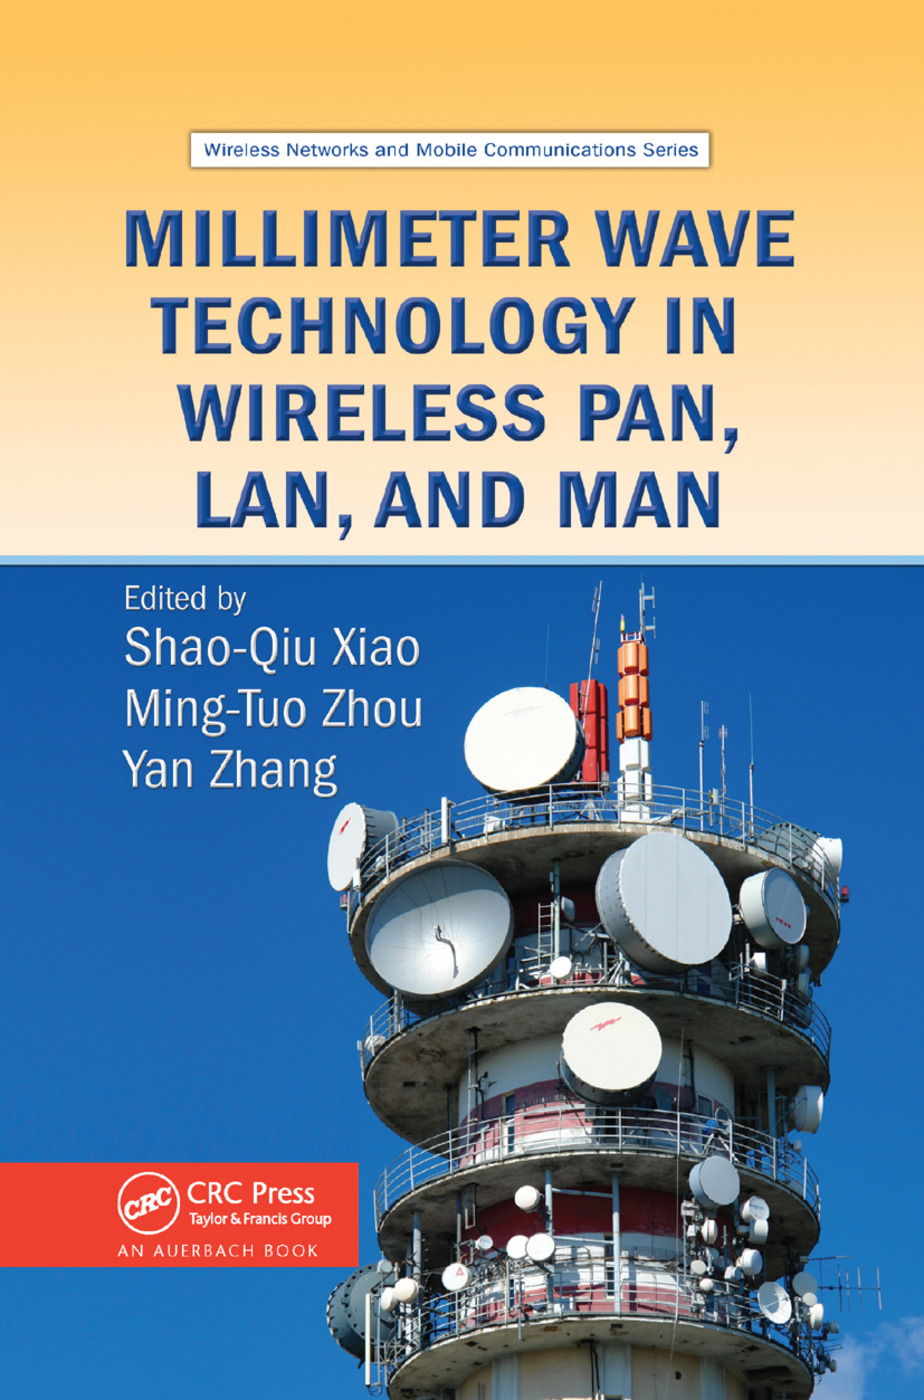 Millimeter Wave Technology in Wireless PAN, LAN, and MAN